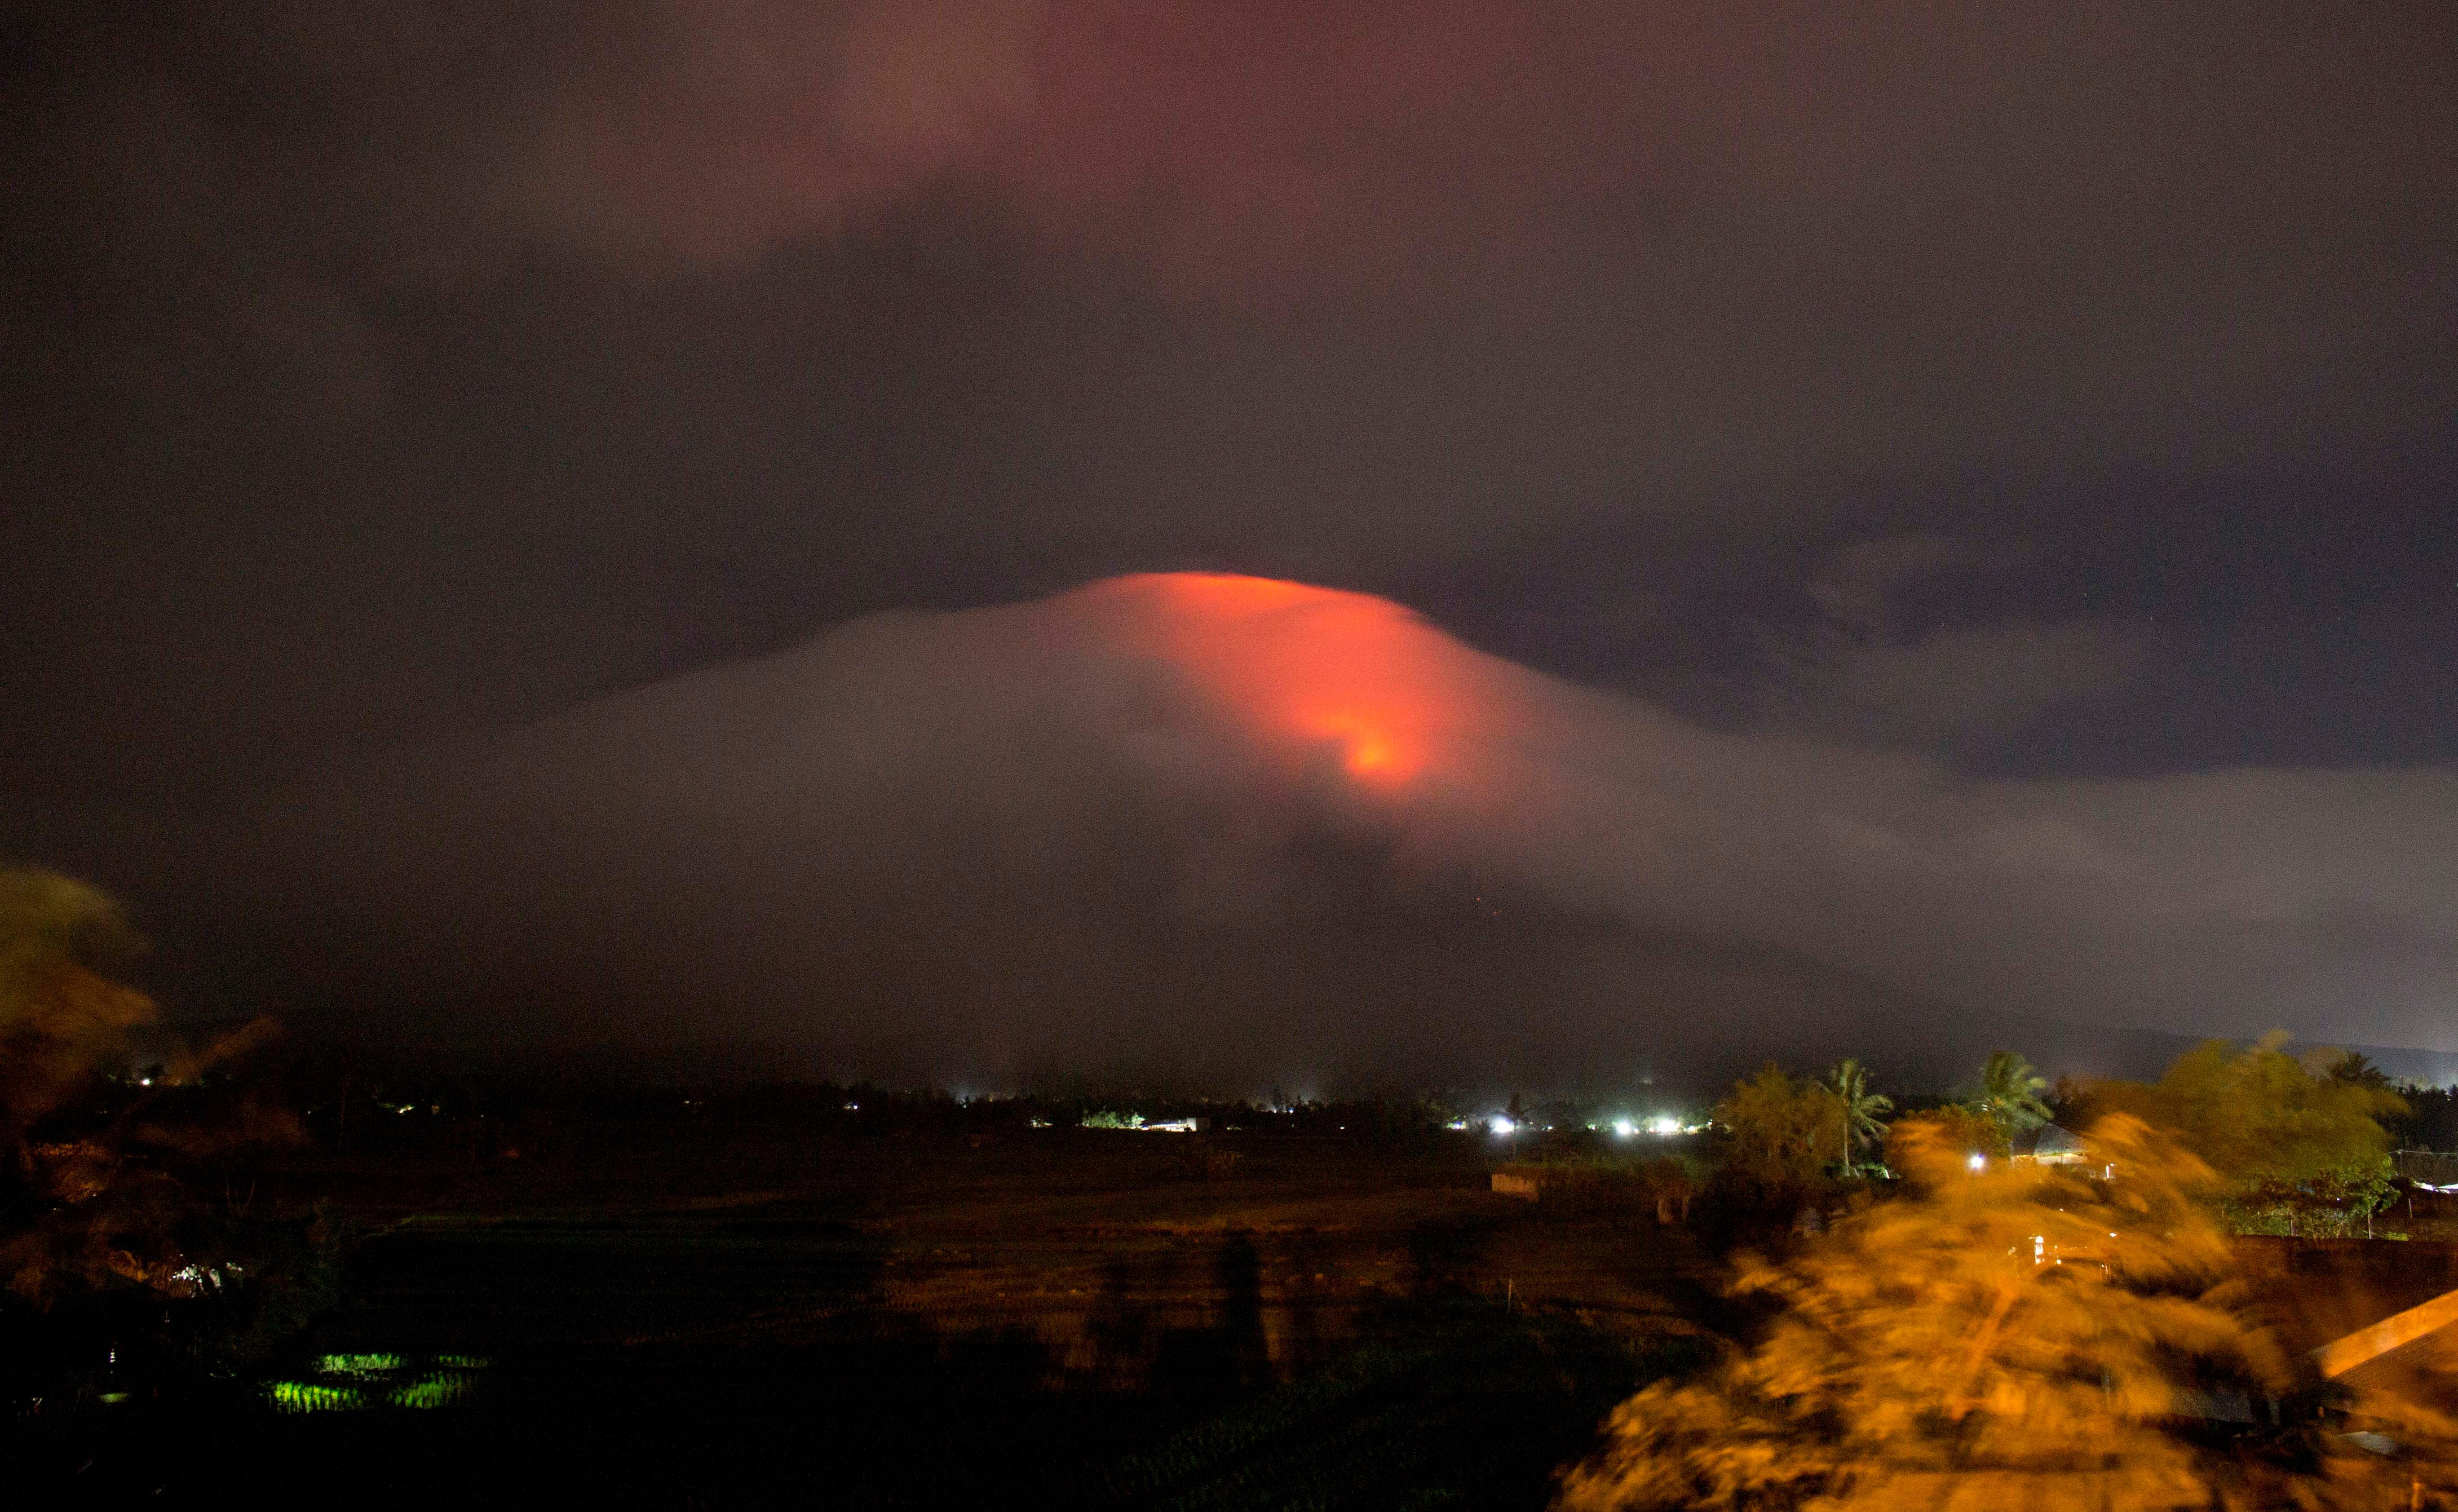 In this Sunday, Jan. 14, 2018, photo provided by Earl Recamunda, an orange glow is seen at the cloud-shrouded crater of Mayon volcano at Legazpi city, Albay province, about 340 kilometers (210 miles) southeast of Manila, Philippines. (Earl Recamunda via AP)<p></p>